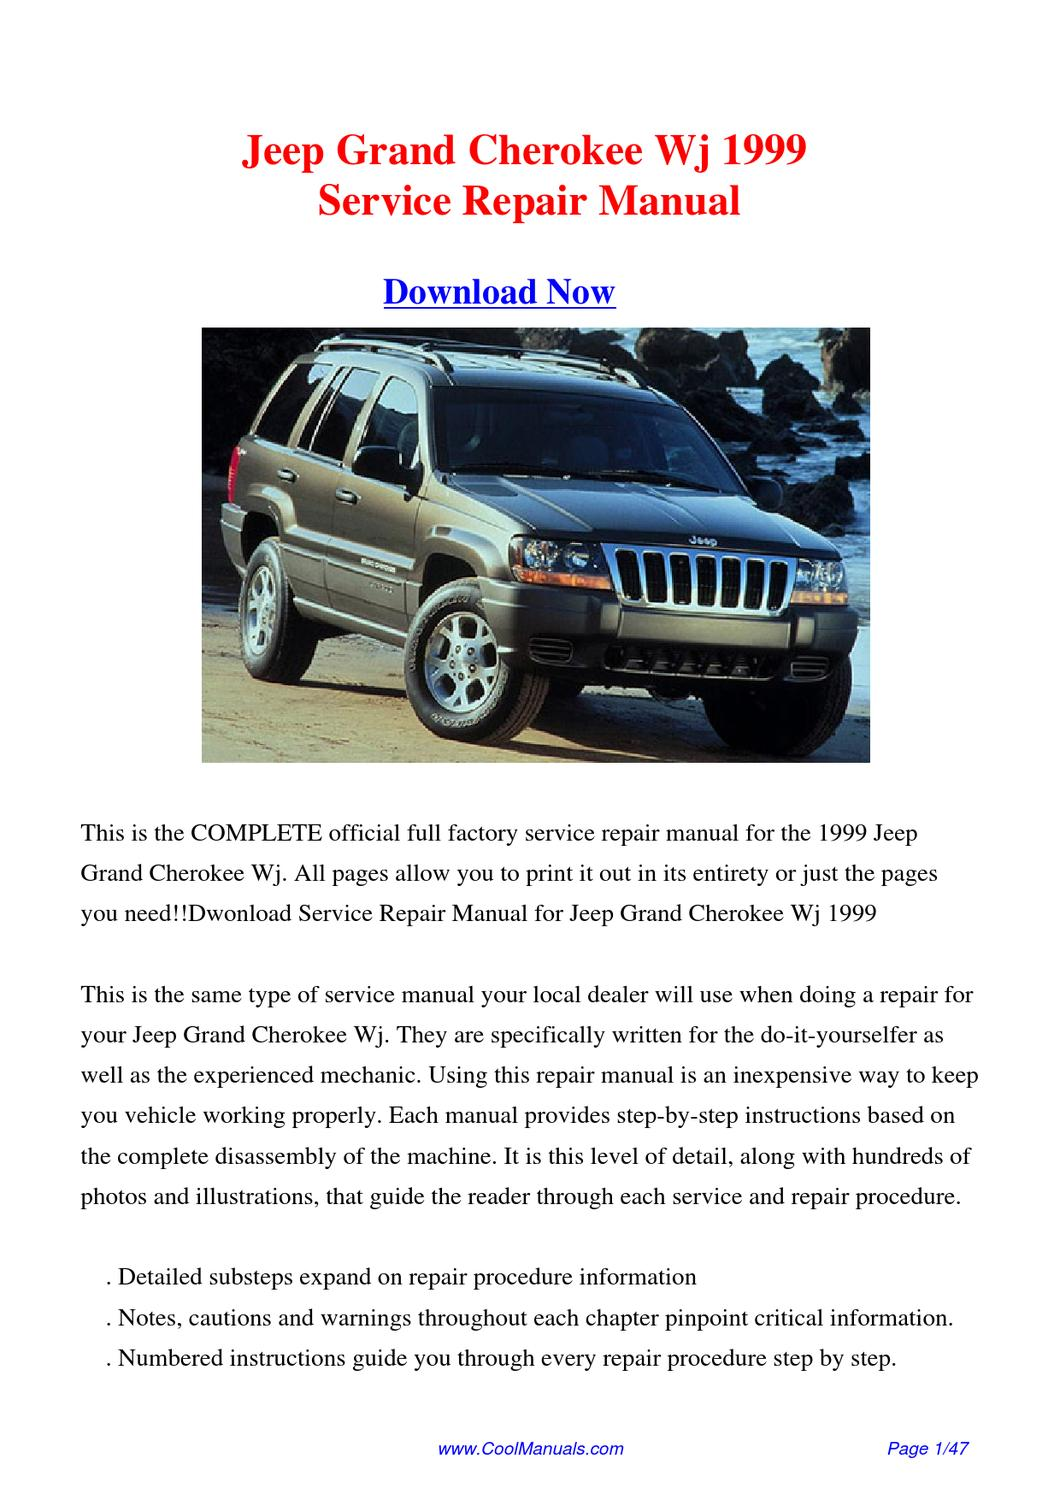 Jeep Grand Cherokee 1999 Manual Guide